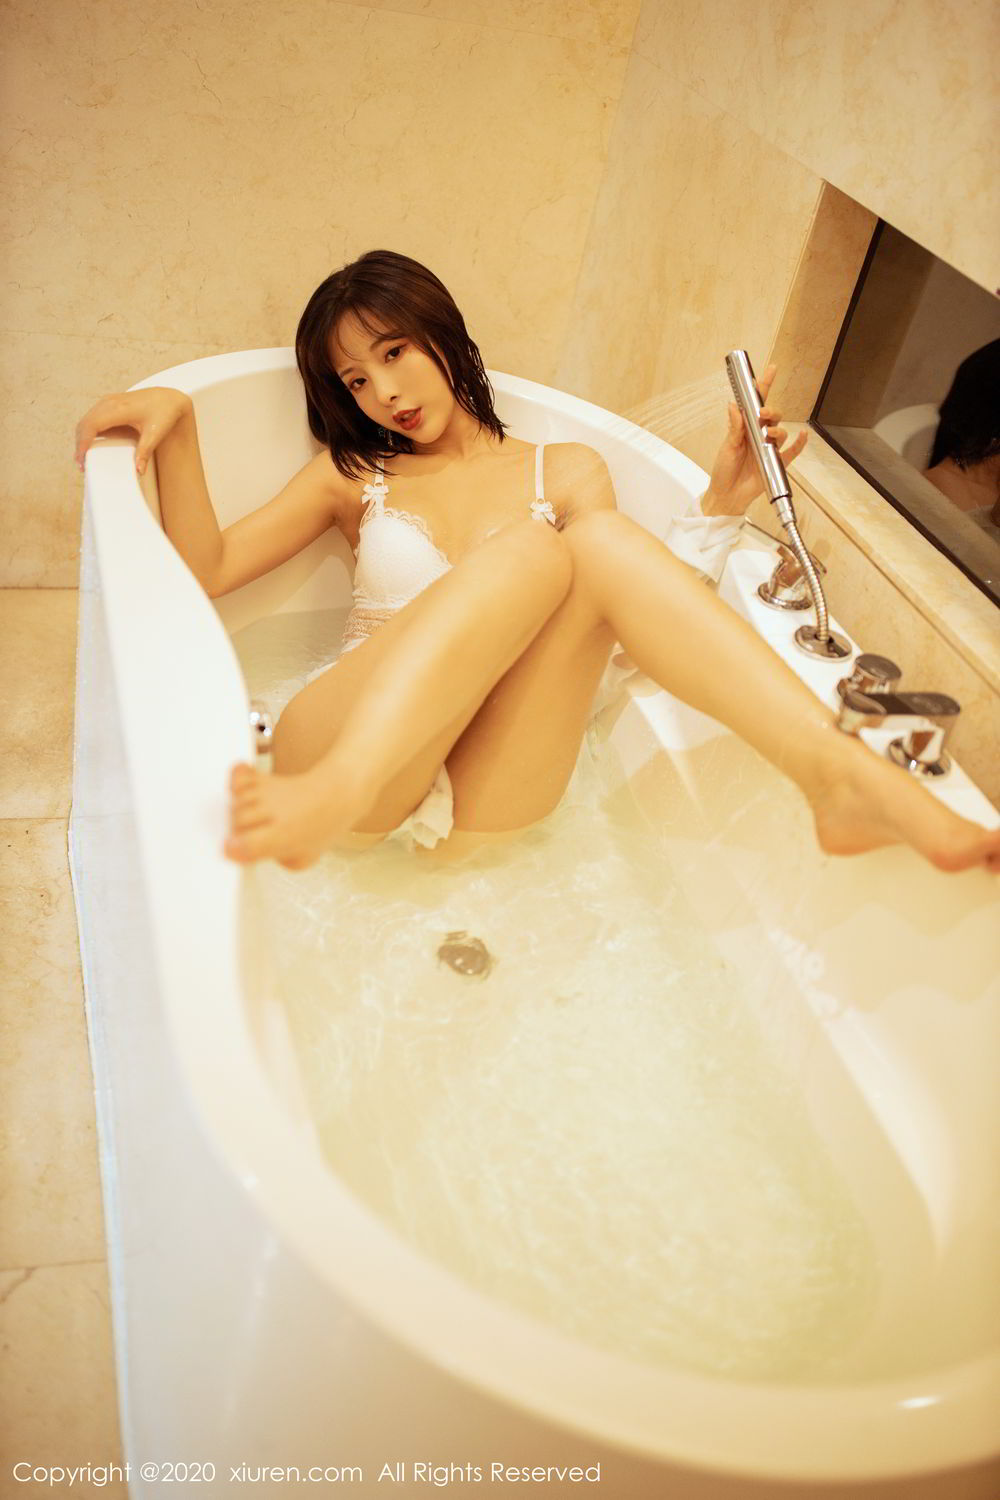 [XiuRen] Vol.2158 Chen Xiao Miao 27P, Bathroom, Chen Xiao Miao, Tall, Wet, Xiuren